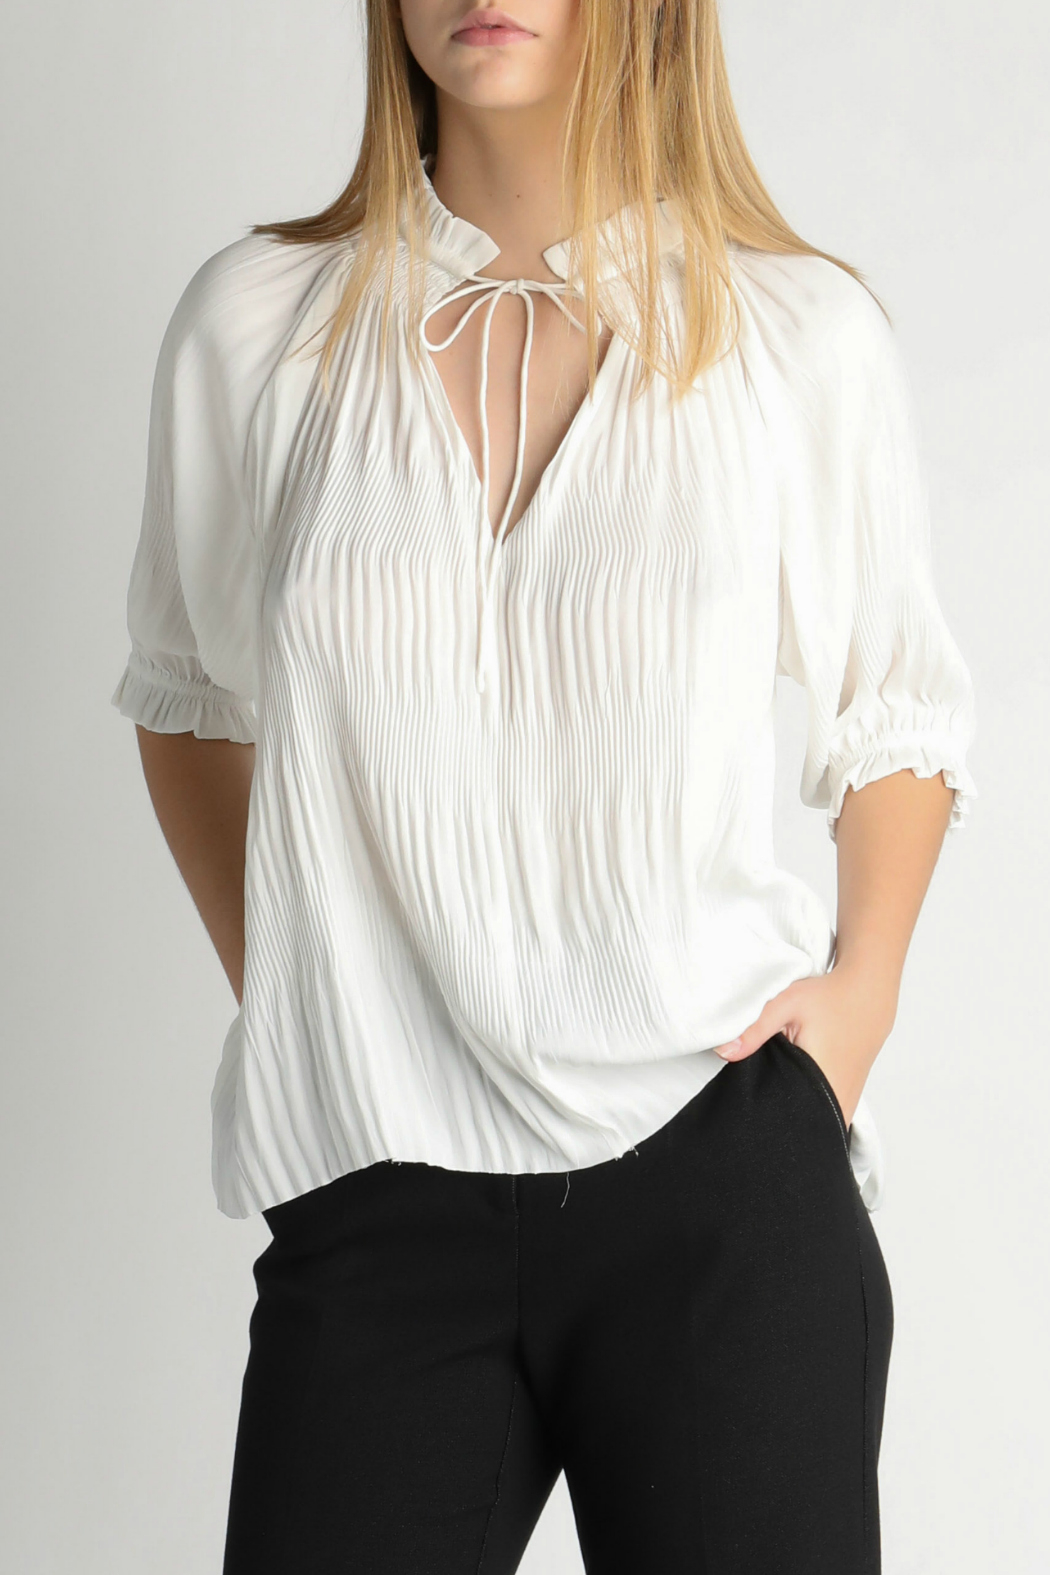 Current Air Angelic Pleated Blouse - Main Image